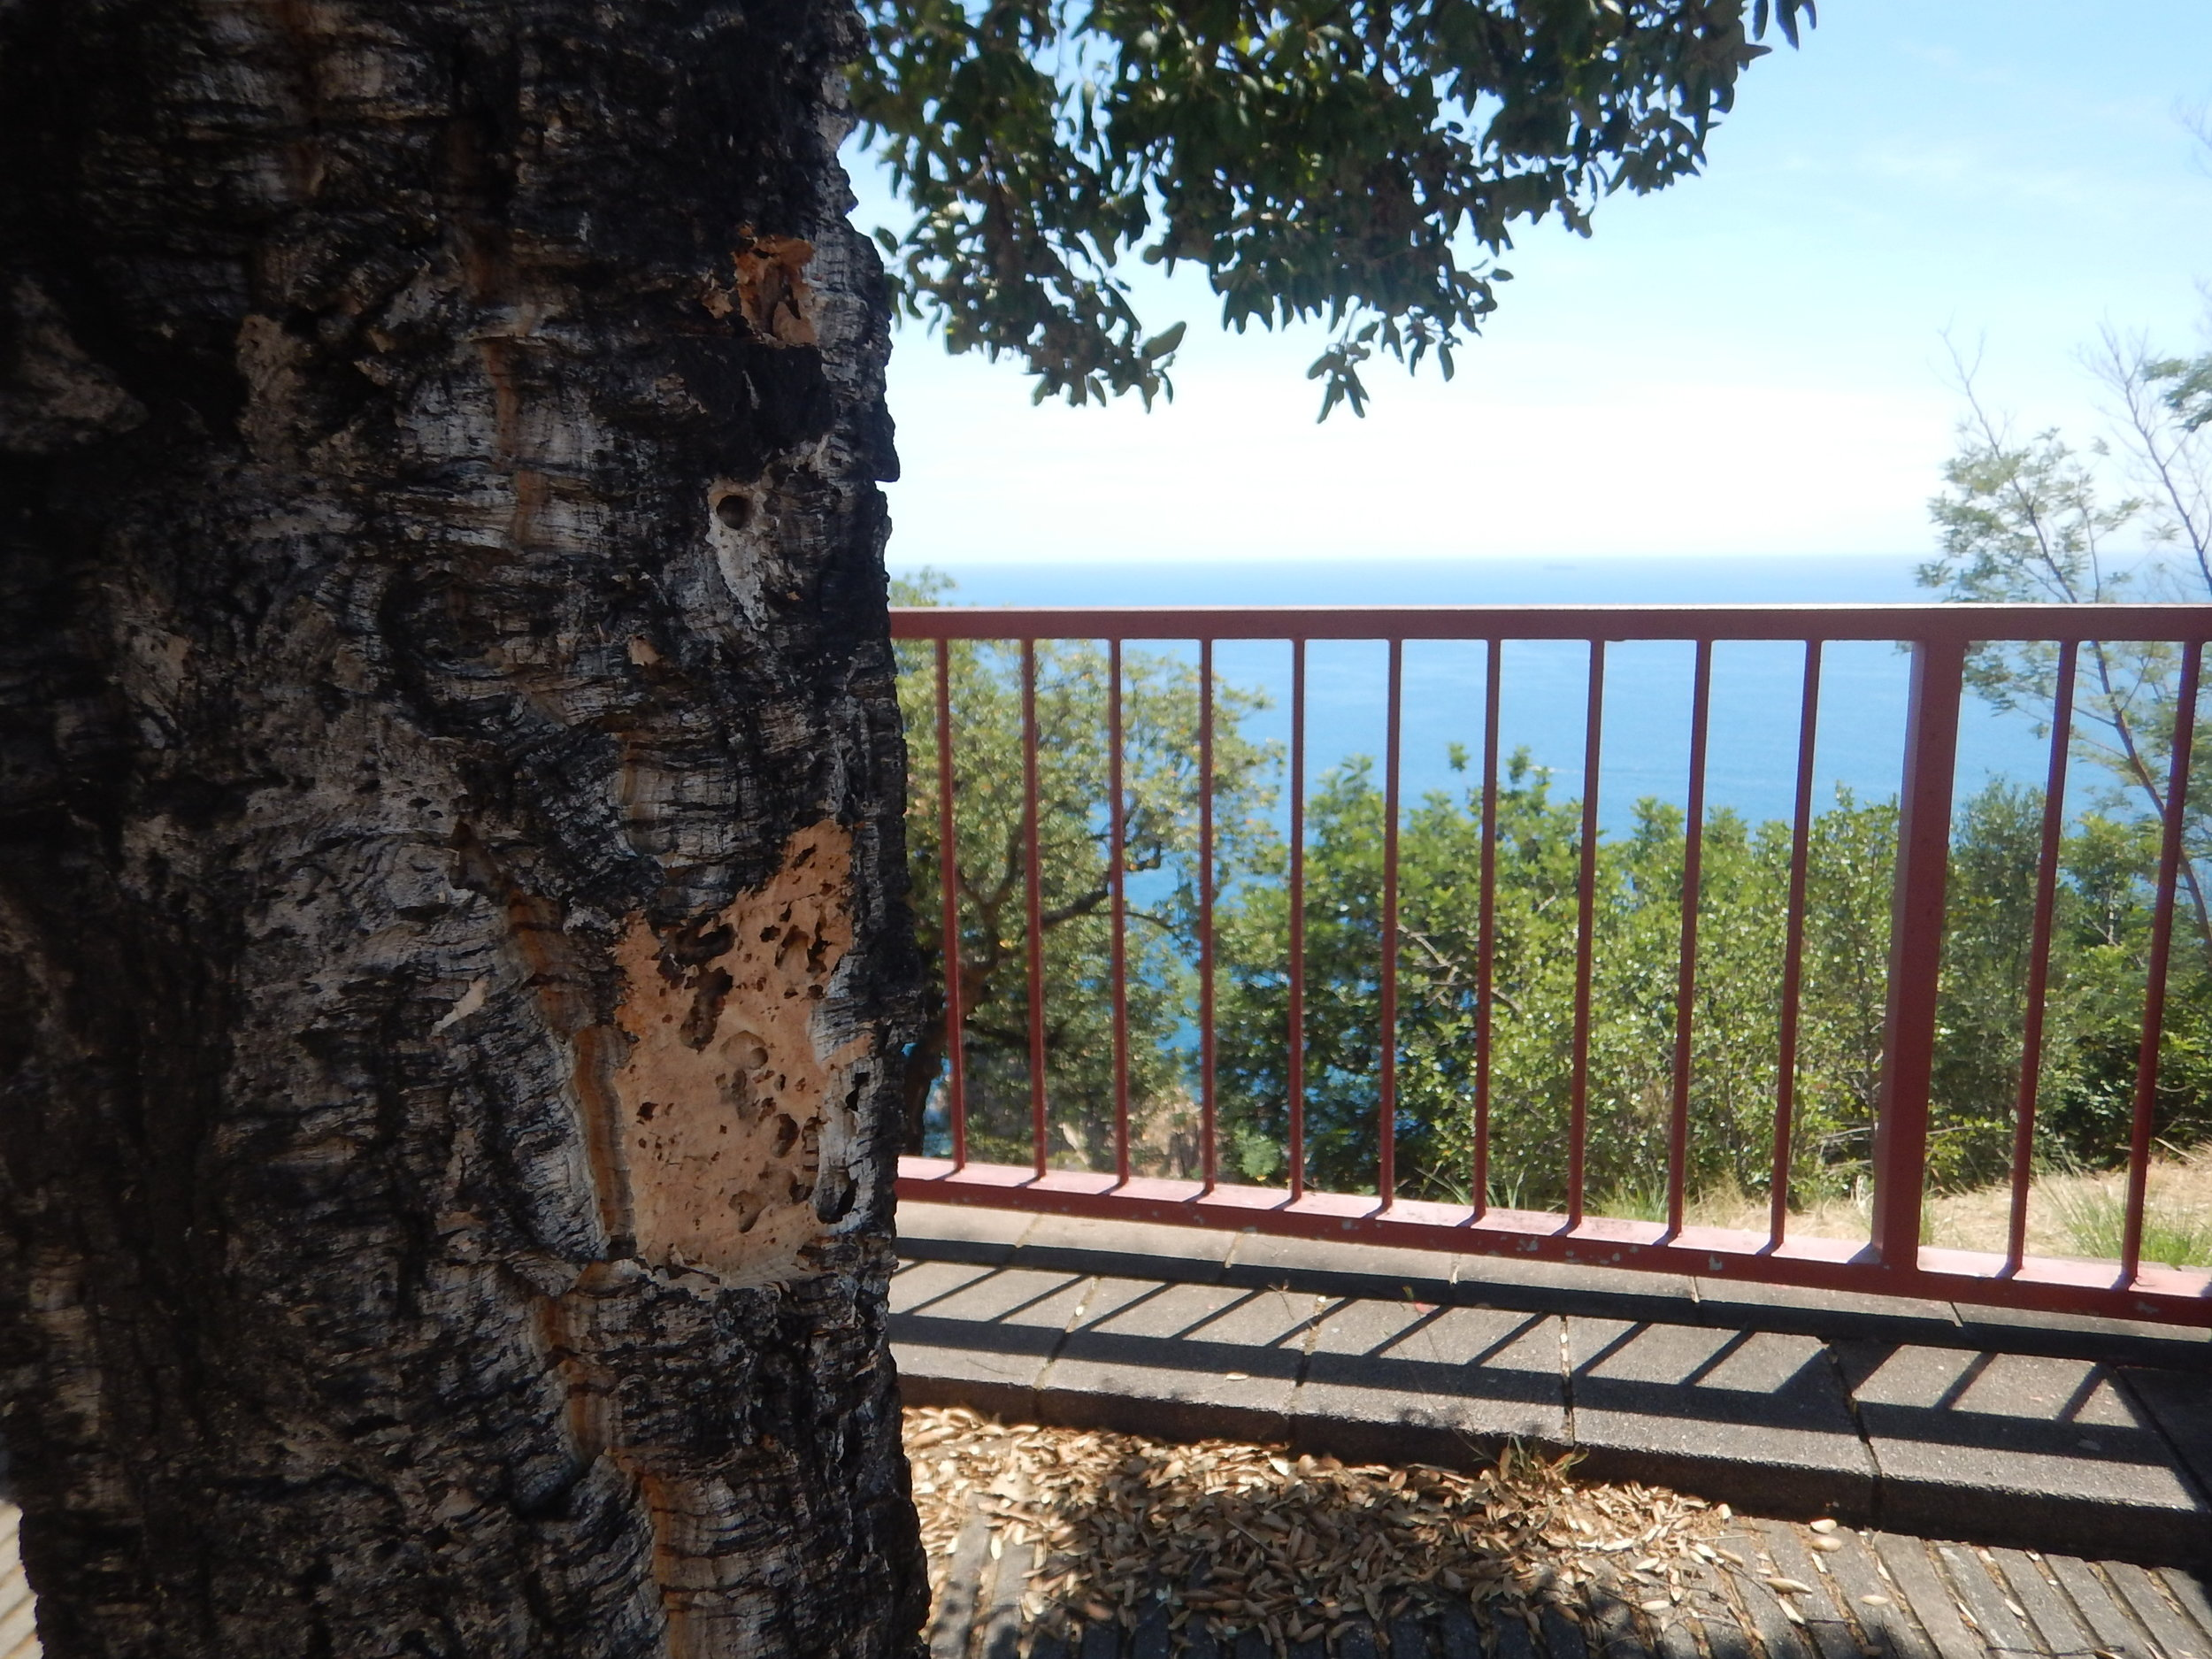 CORRECTION  Today as I was leaving Spain and heading to France along the coast I spied this cork tree at a scenic lookout. So they obviously thrive at sea level too. You can see on the trunk where someone has removed some bark to show the cork.